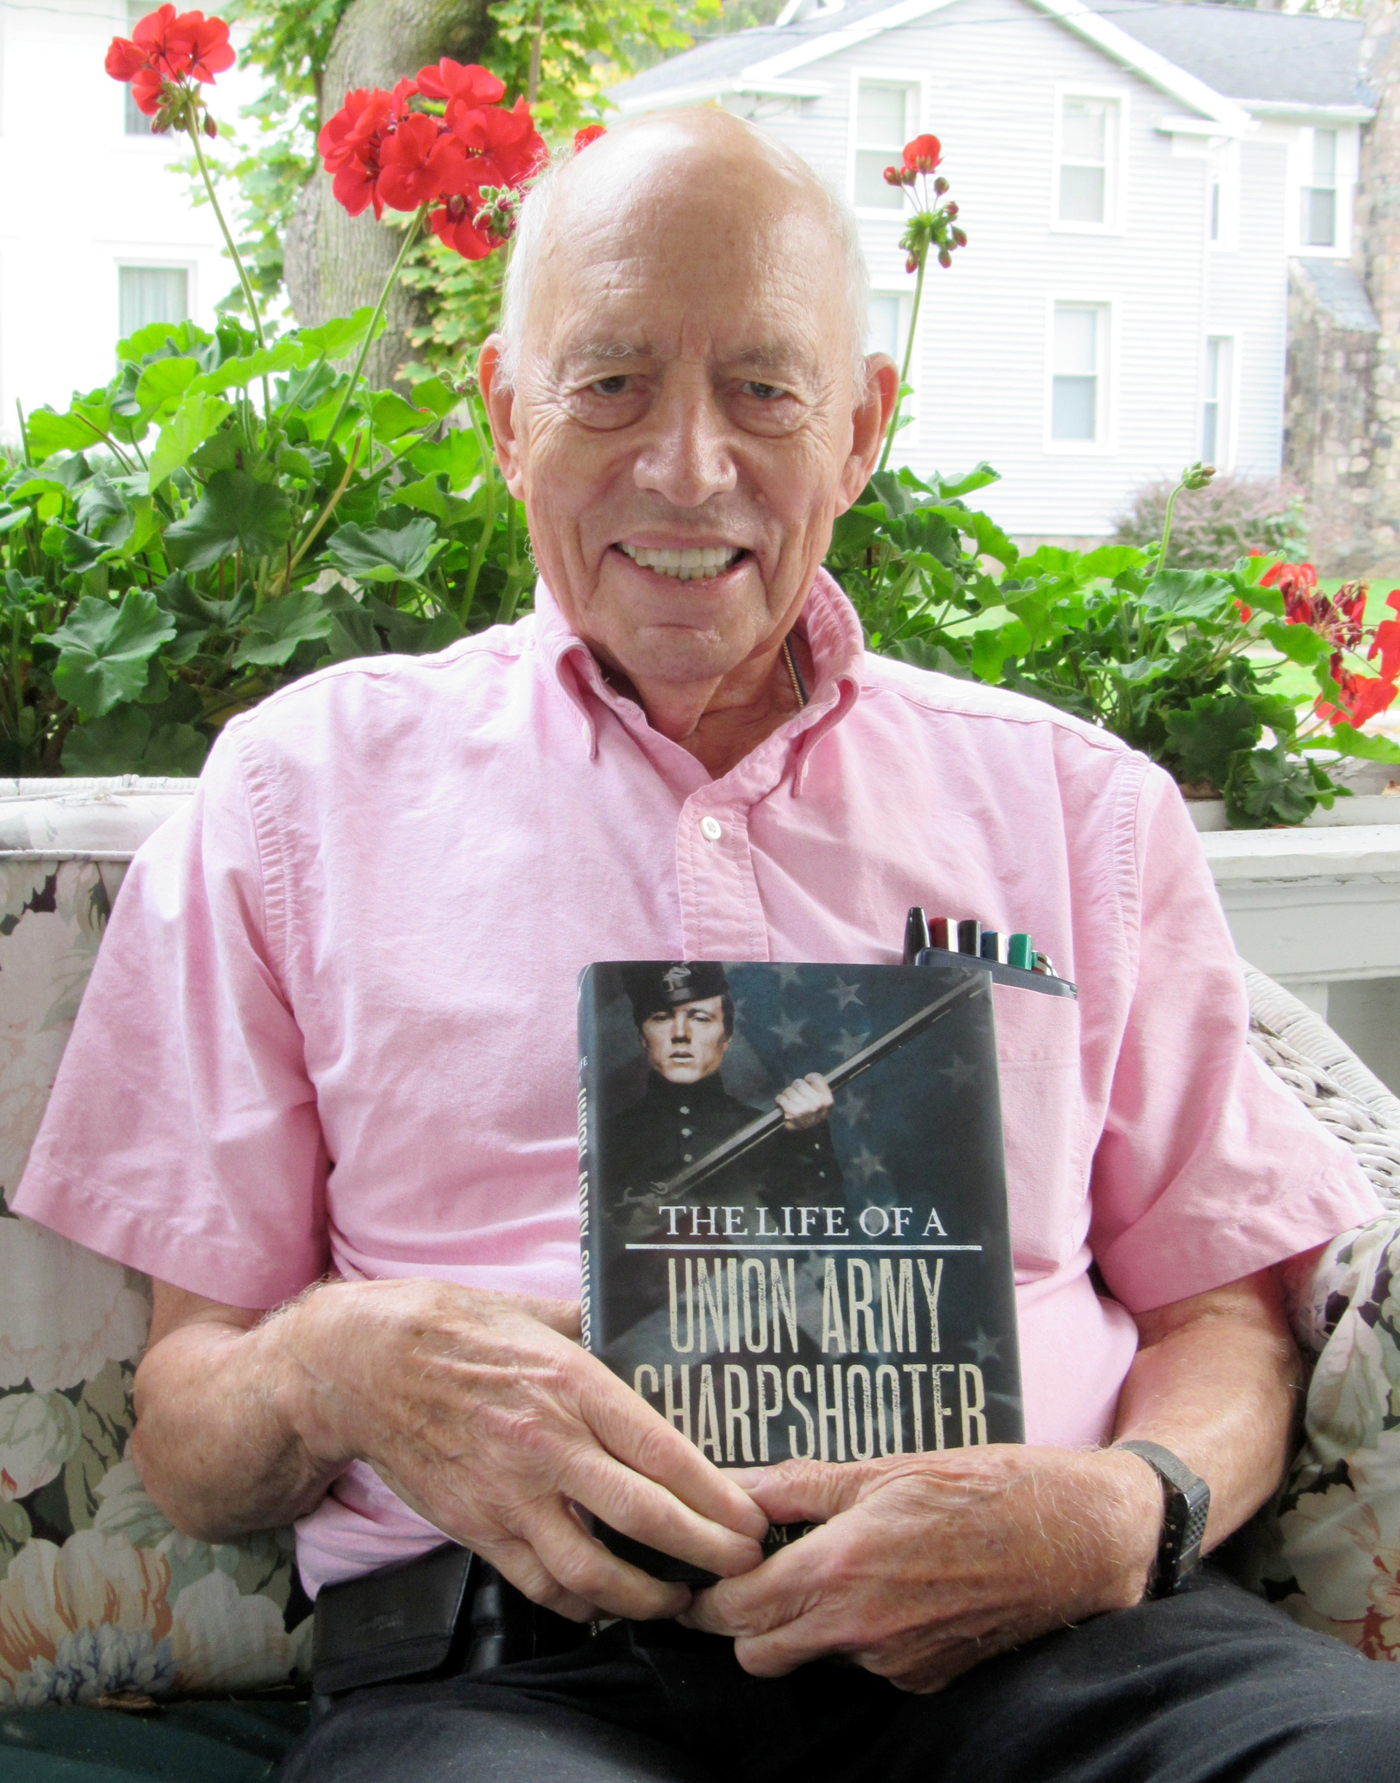 Bill Andrews poses on his porch with his newest book - The Life of a Union Army Sharpshooter: The Diaries and Letters of John T. Farnham. K. Gabalski photo